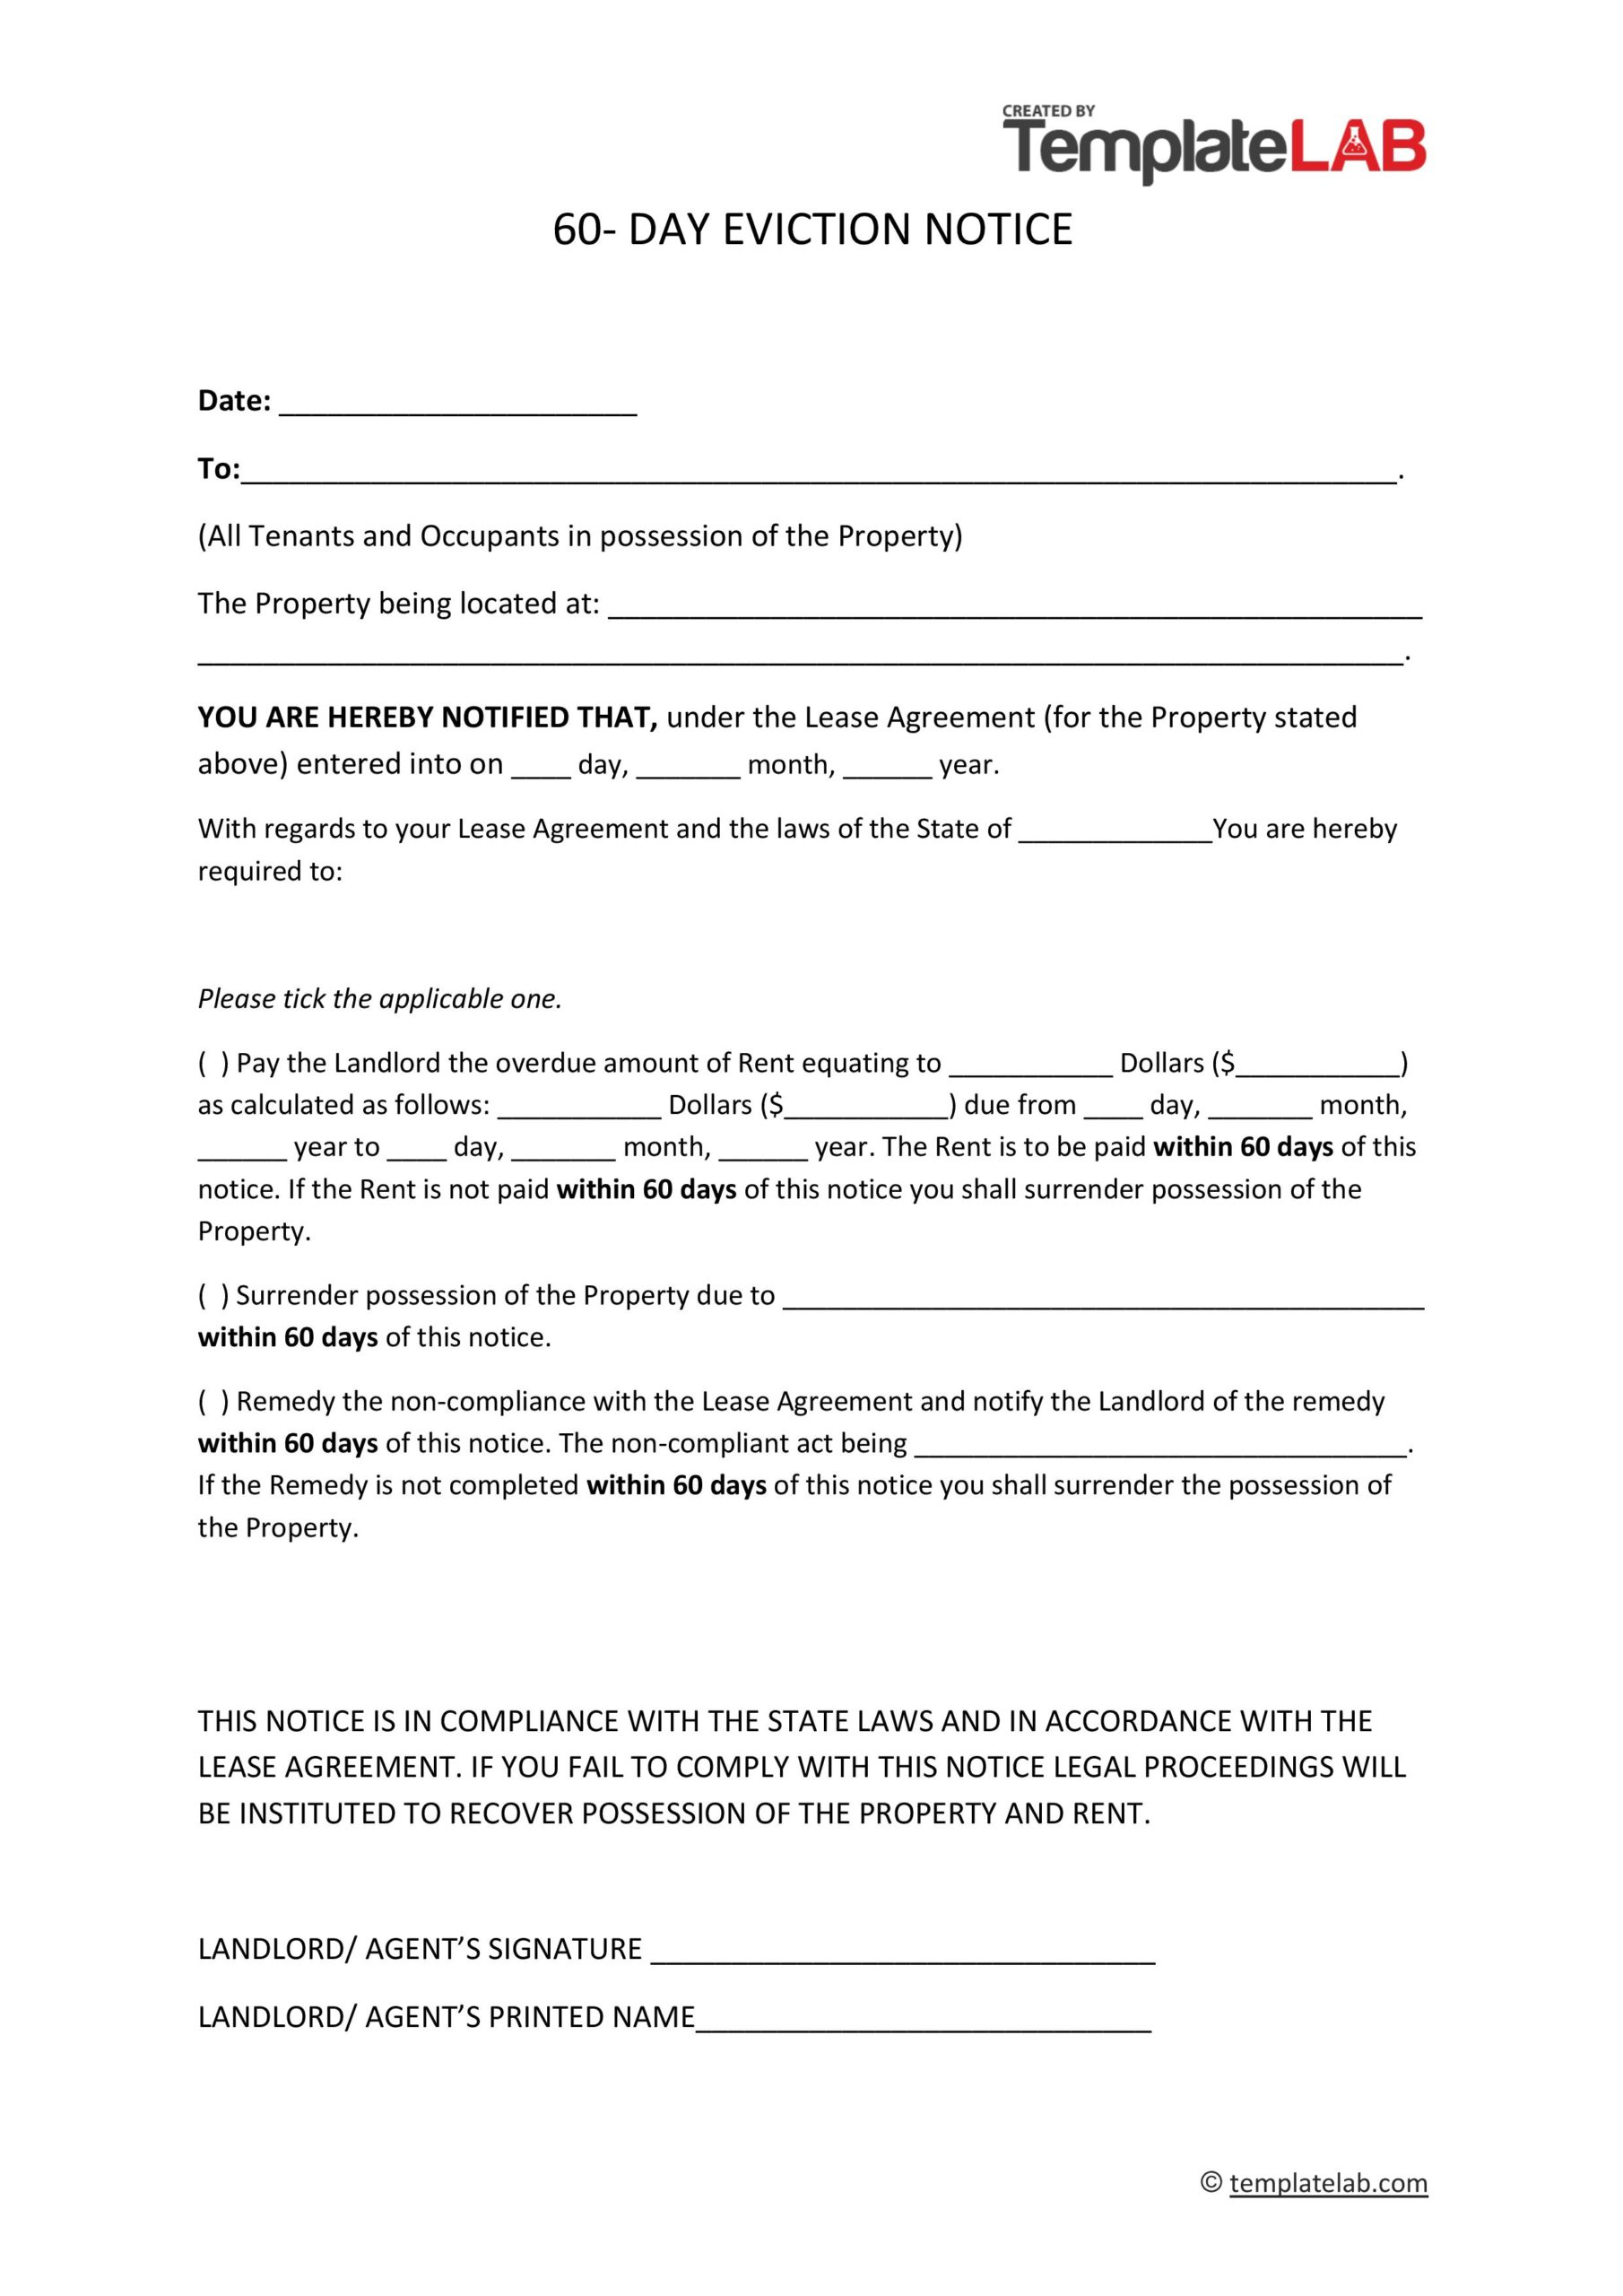 Free 60 Days Eviction Notice Template